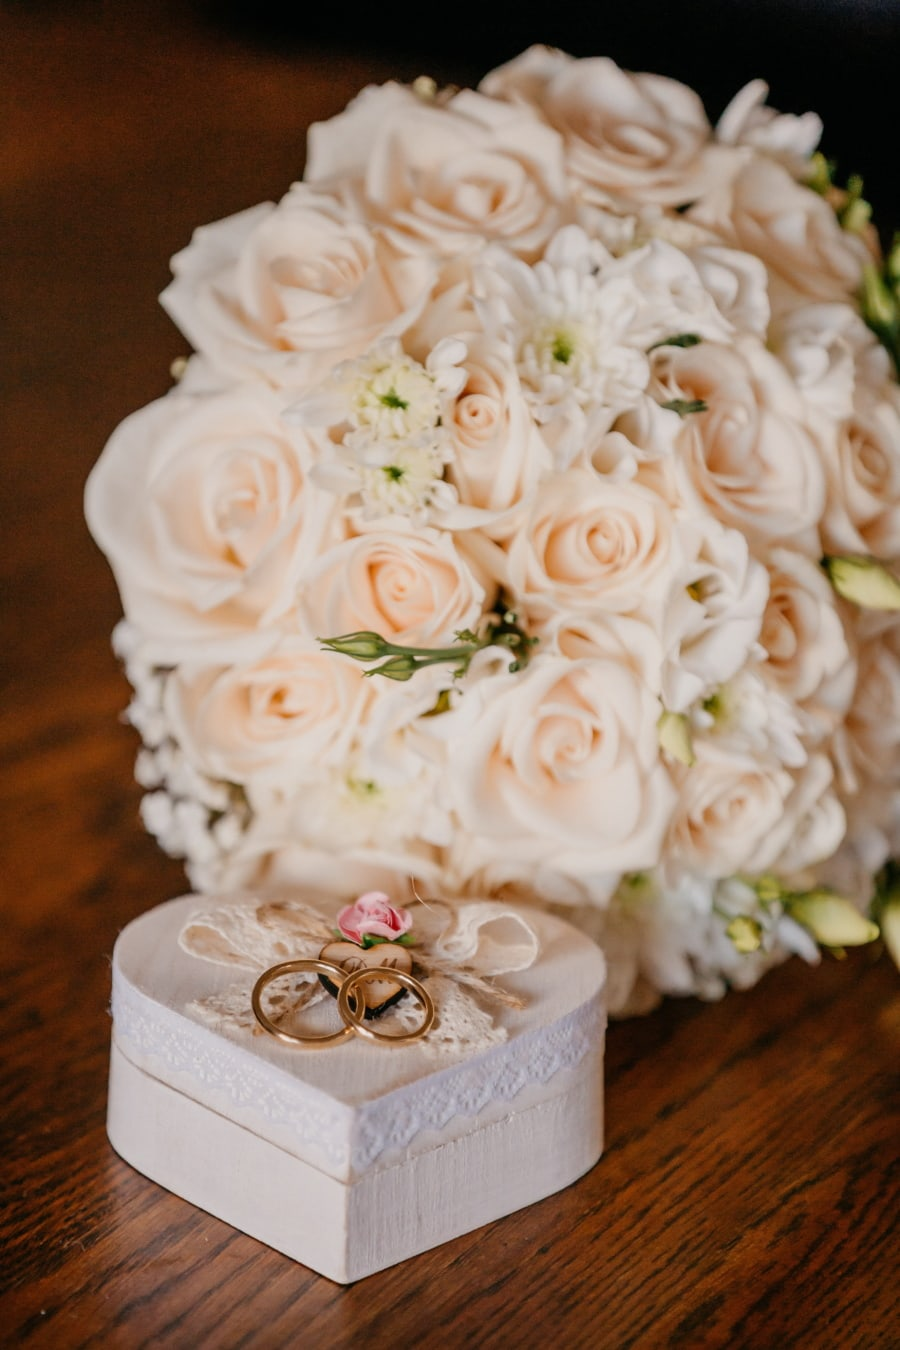 heart, wedding ring, golden glow, box, wedding bouquet, gifts, elegant, bouquet, flower, arrangement